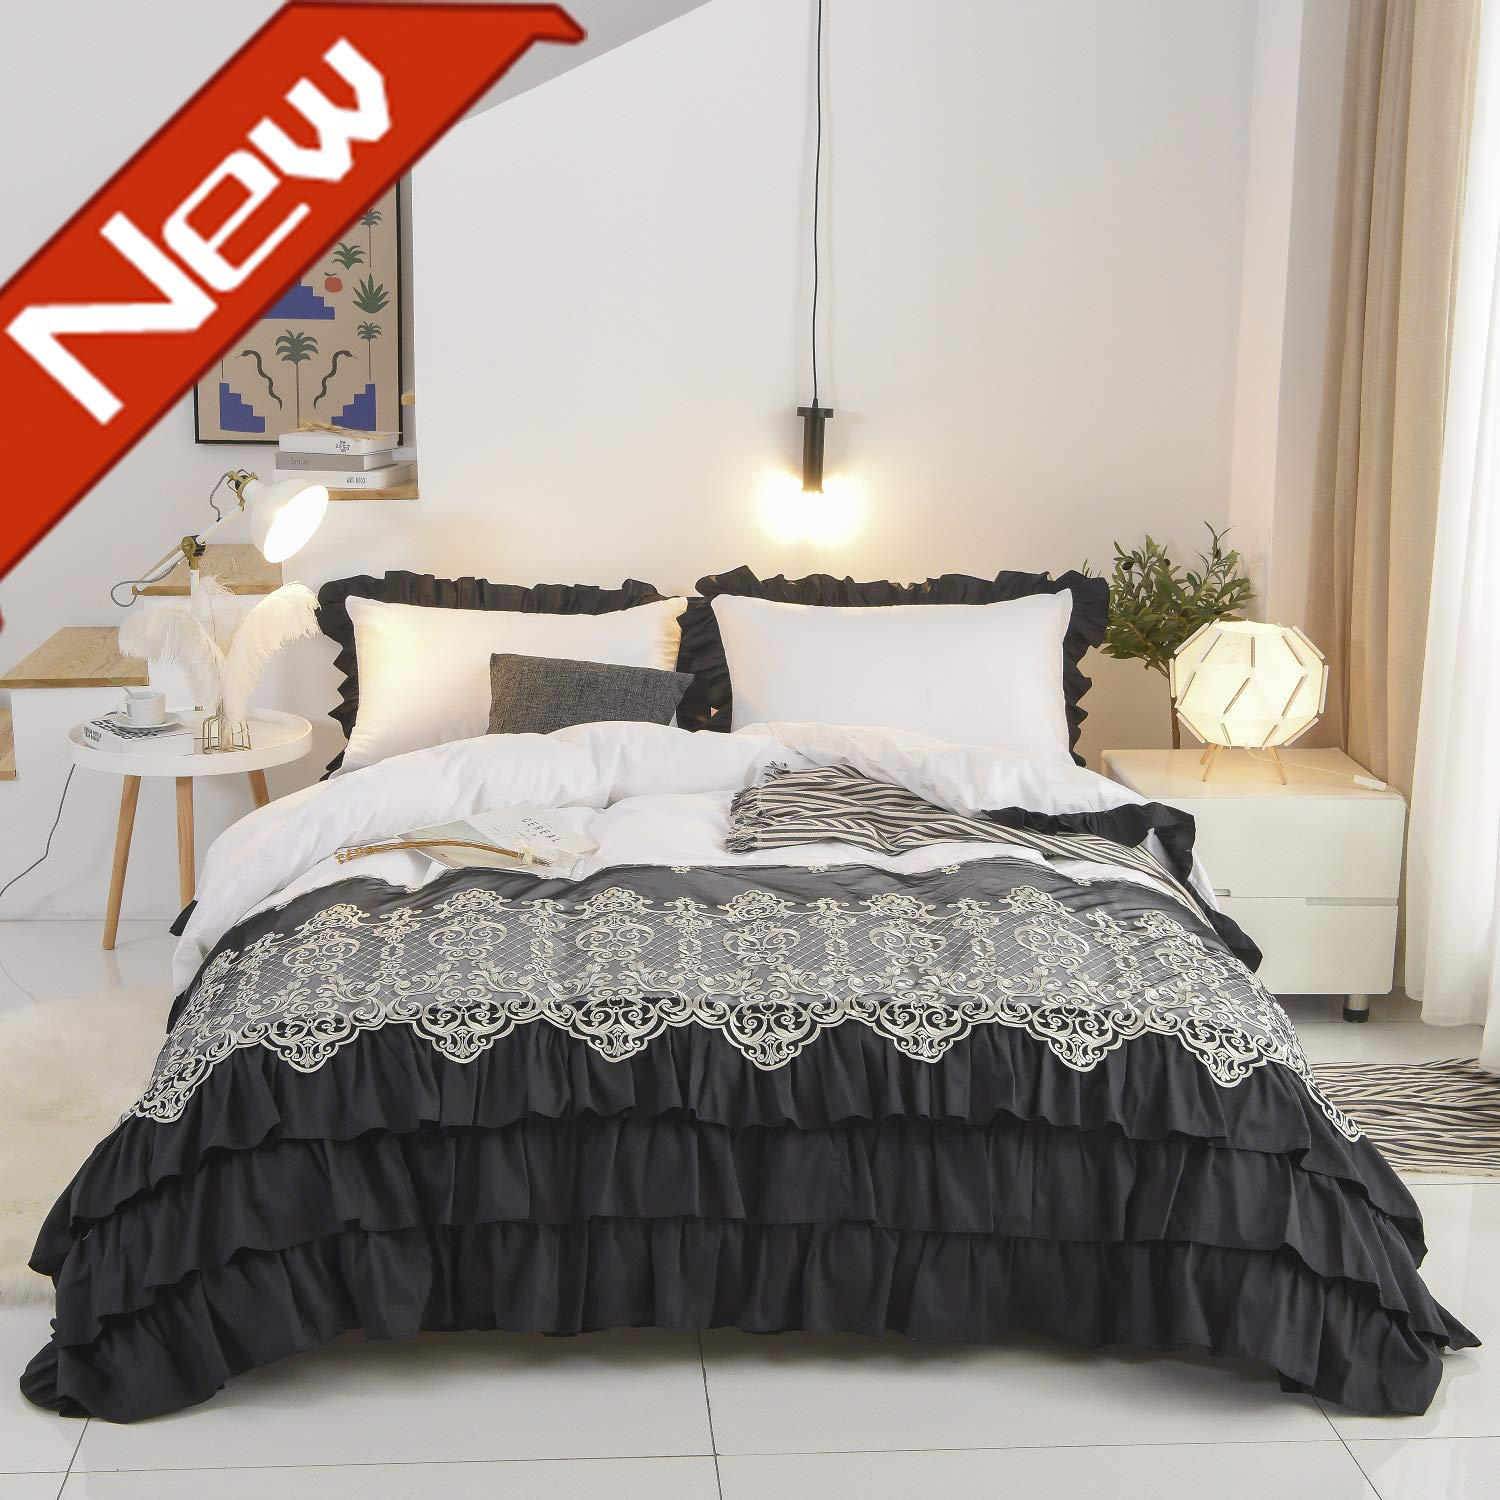 Fadfay Black And White Luxury Lace Chic Bedding Set With Waterfall Ruffle 100 Cotton Extra Soft Duvet Cover Set Full Size Reversible Hypoallergenic With Hidden Zipper Closure 3 Pieces